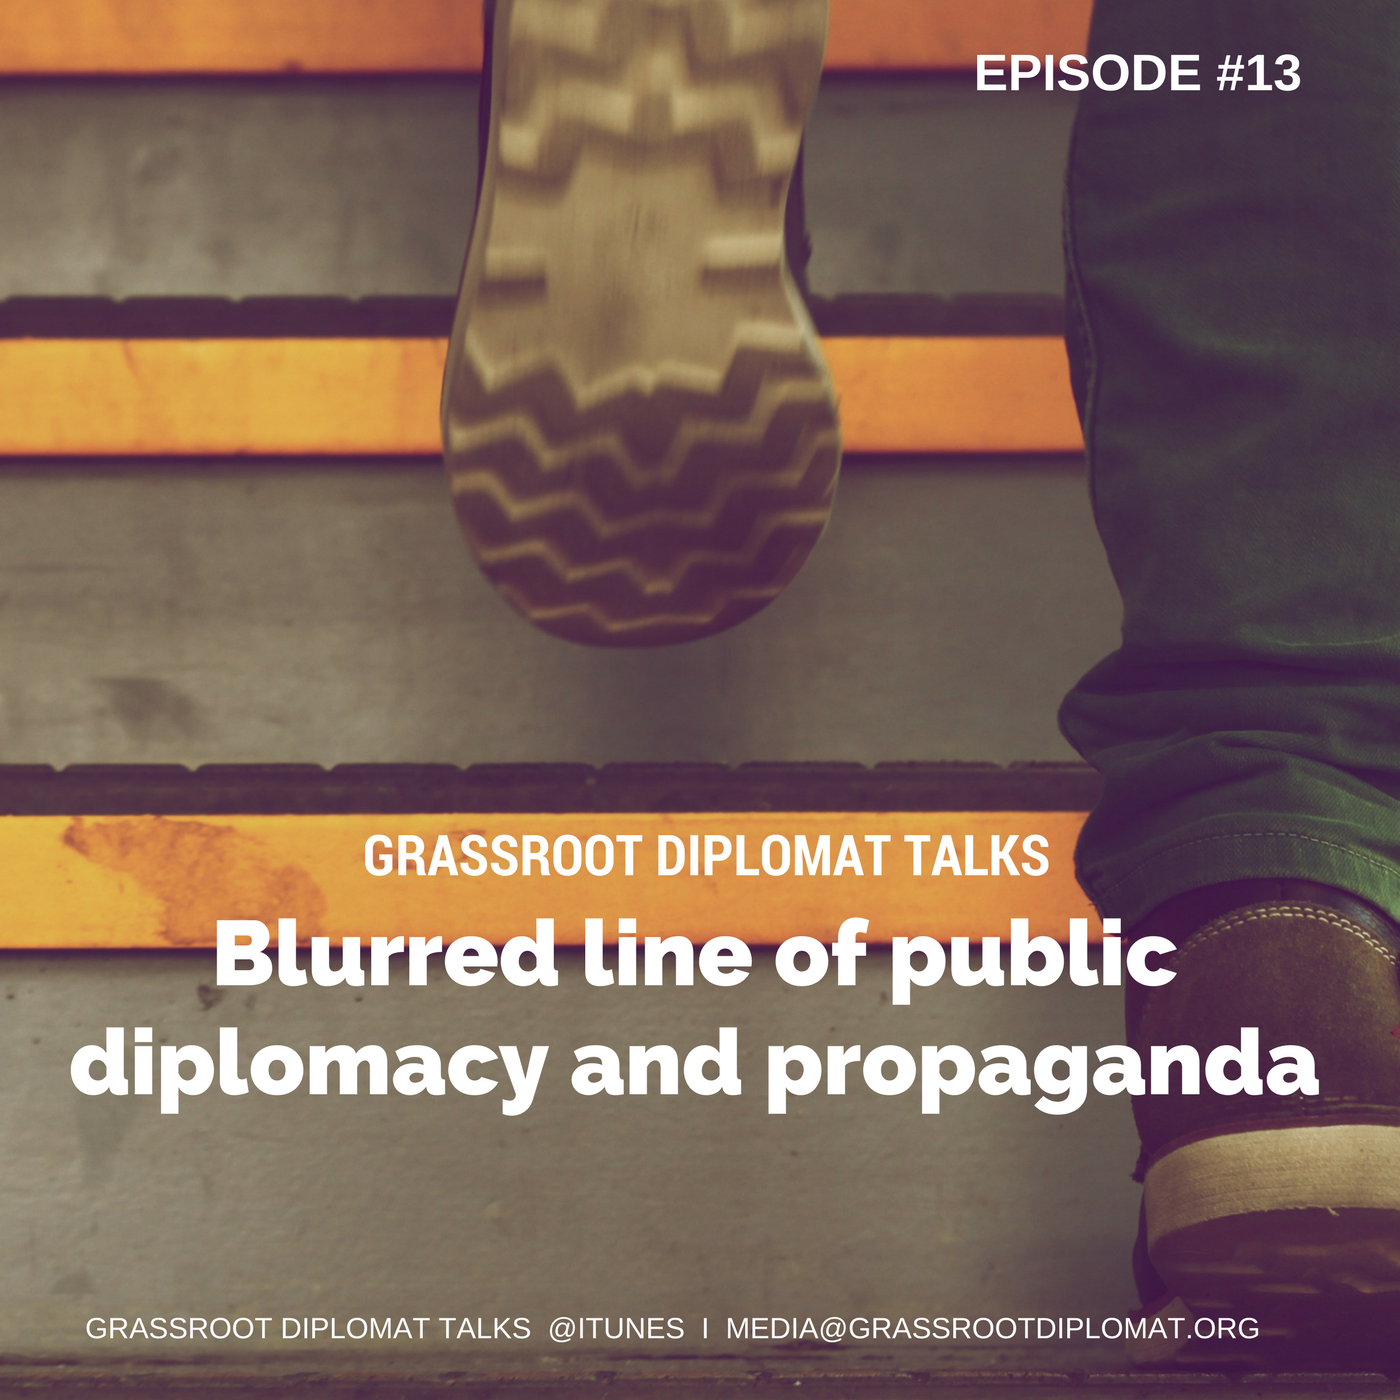 013 Blurred line of public diplomacy and propaganda.png